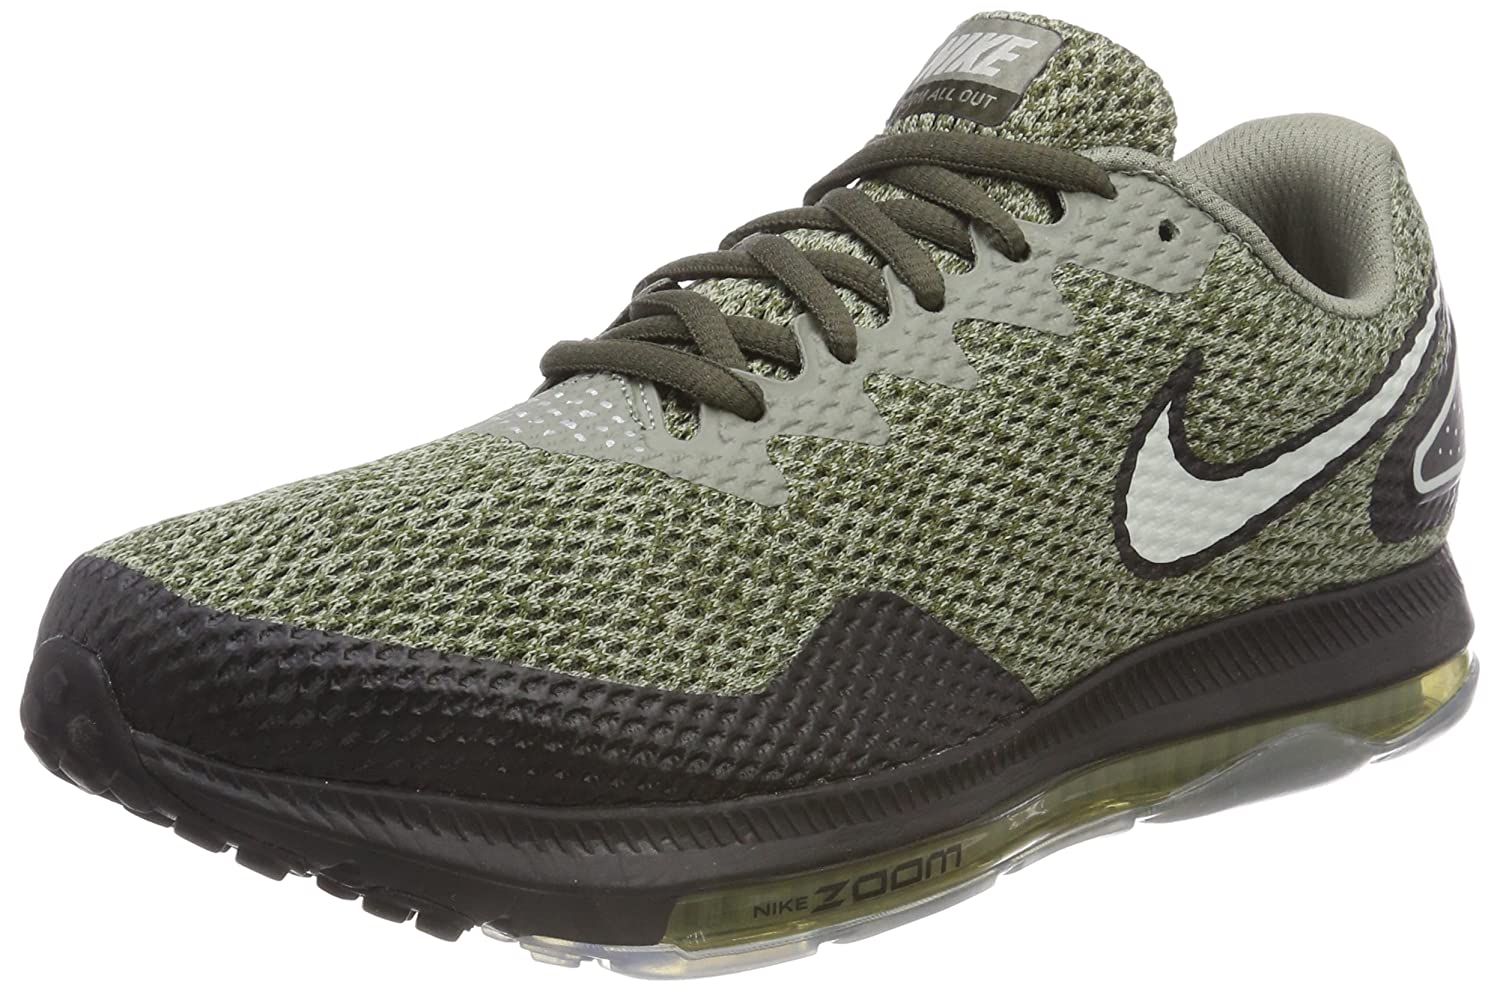 Nike Zoom All out Low 2, Zapatillas de Gimnasia para Hombre 40.5 EU|Gris (Cargo Khaki/Lt Bone/Black 300)